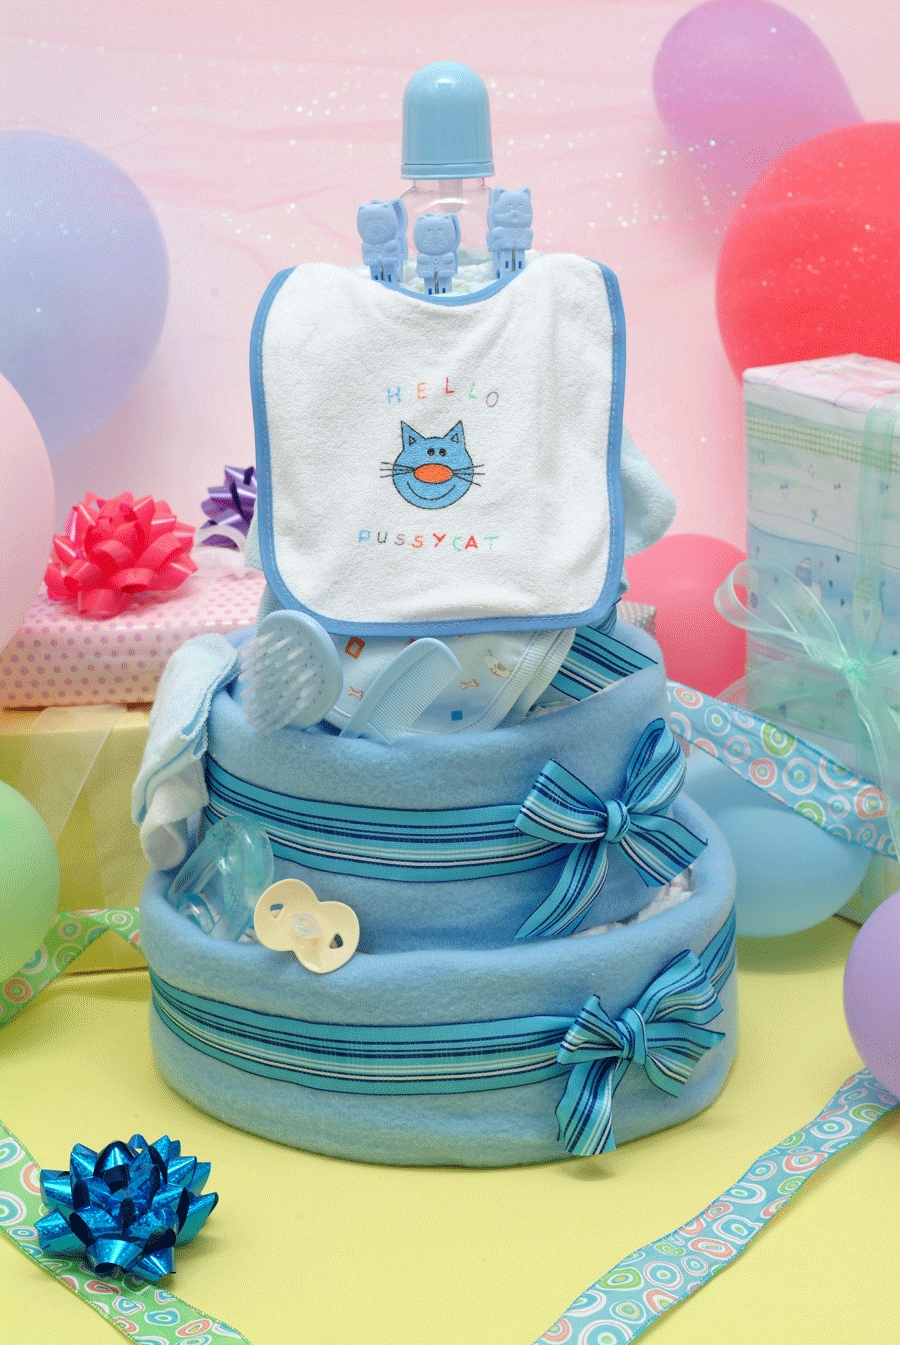 10 Pretty Diaper Ideas For Baby Shower baby shower ideas diaper party raffle prize decoration staggering 2020